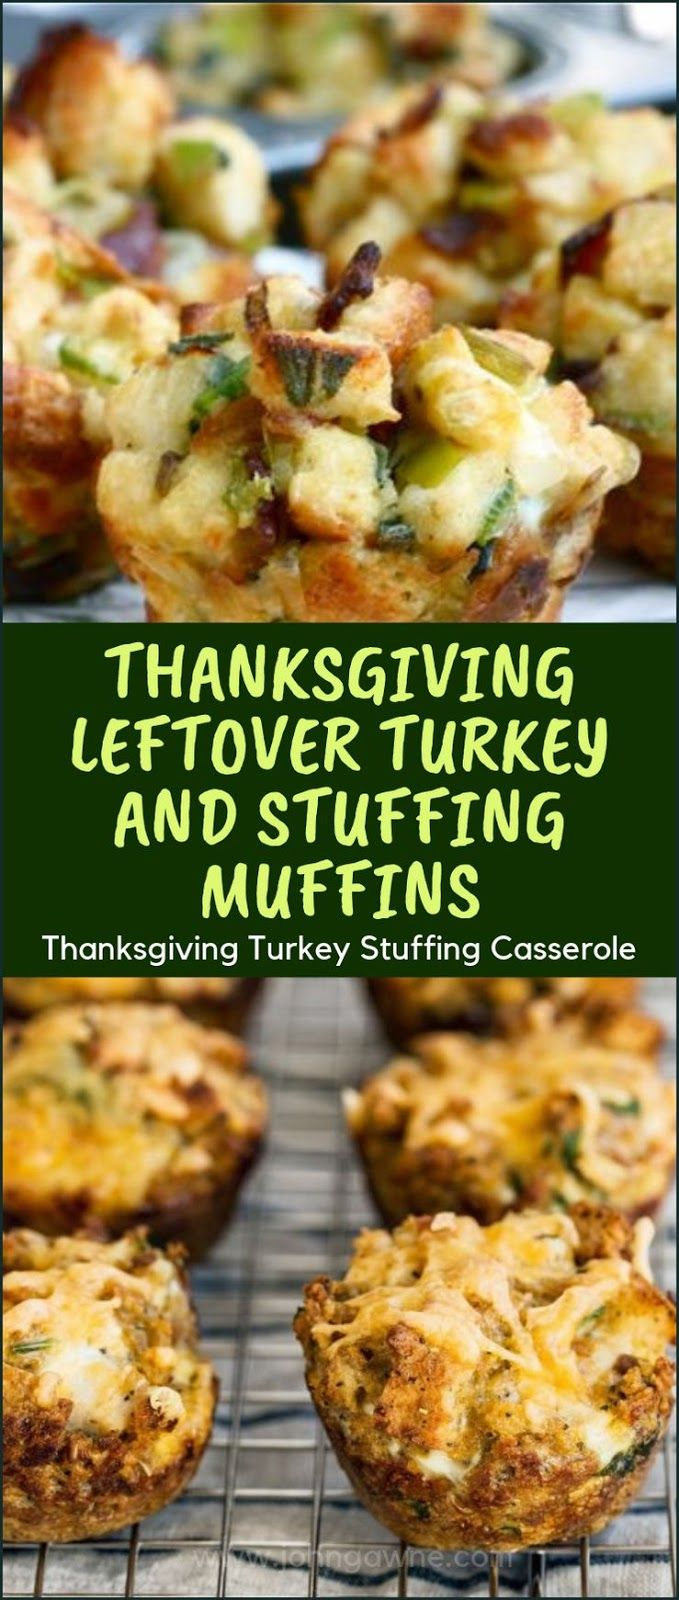 Thanksgiving Leftover Turkey and Stuffing Muffins - Thanksgiving Turkey Stuffing Casserole